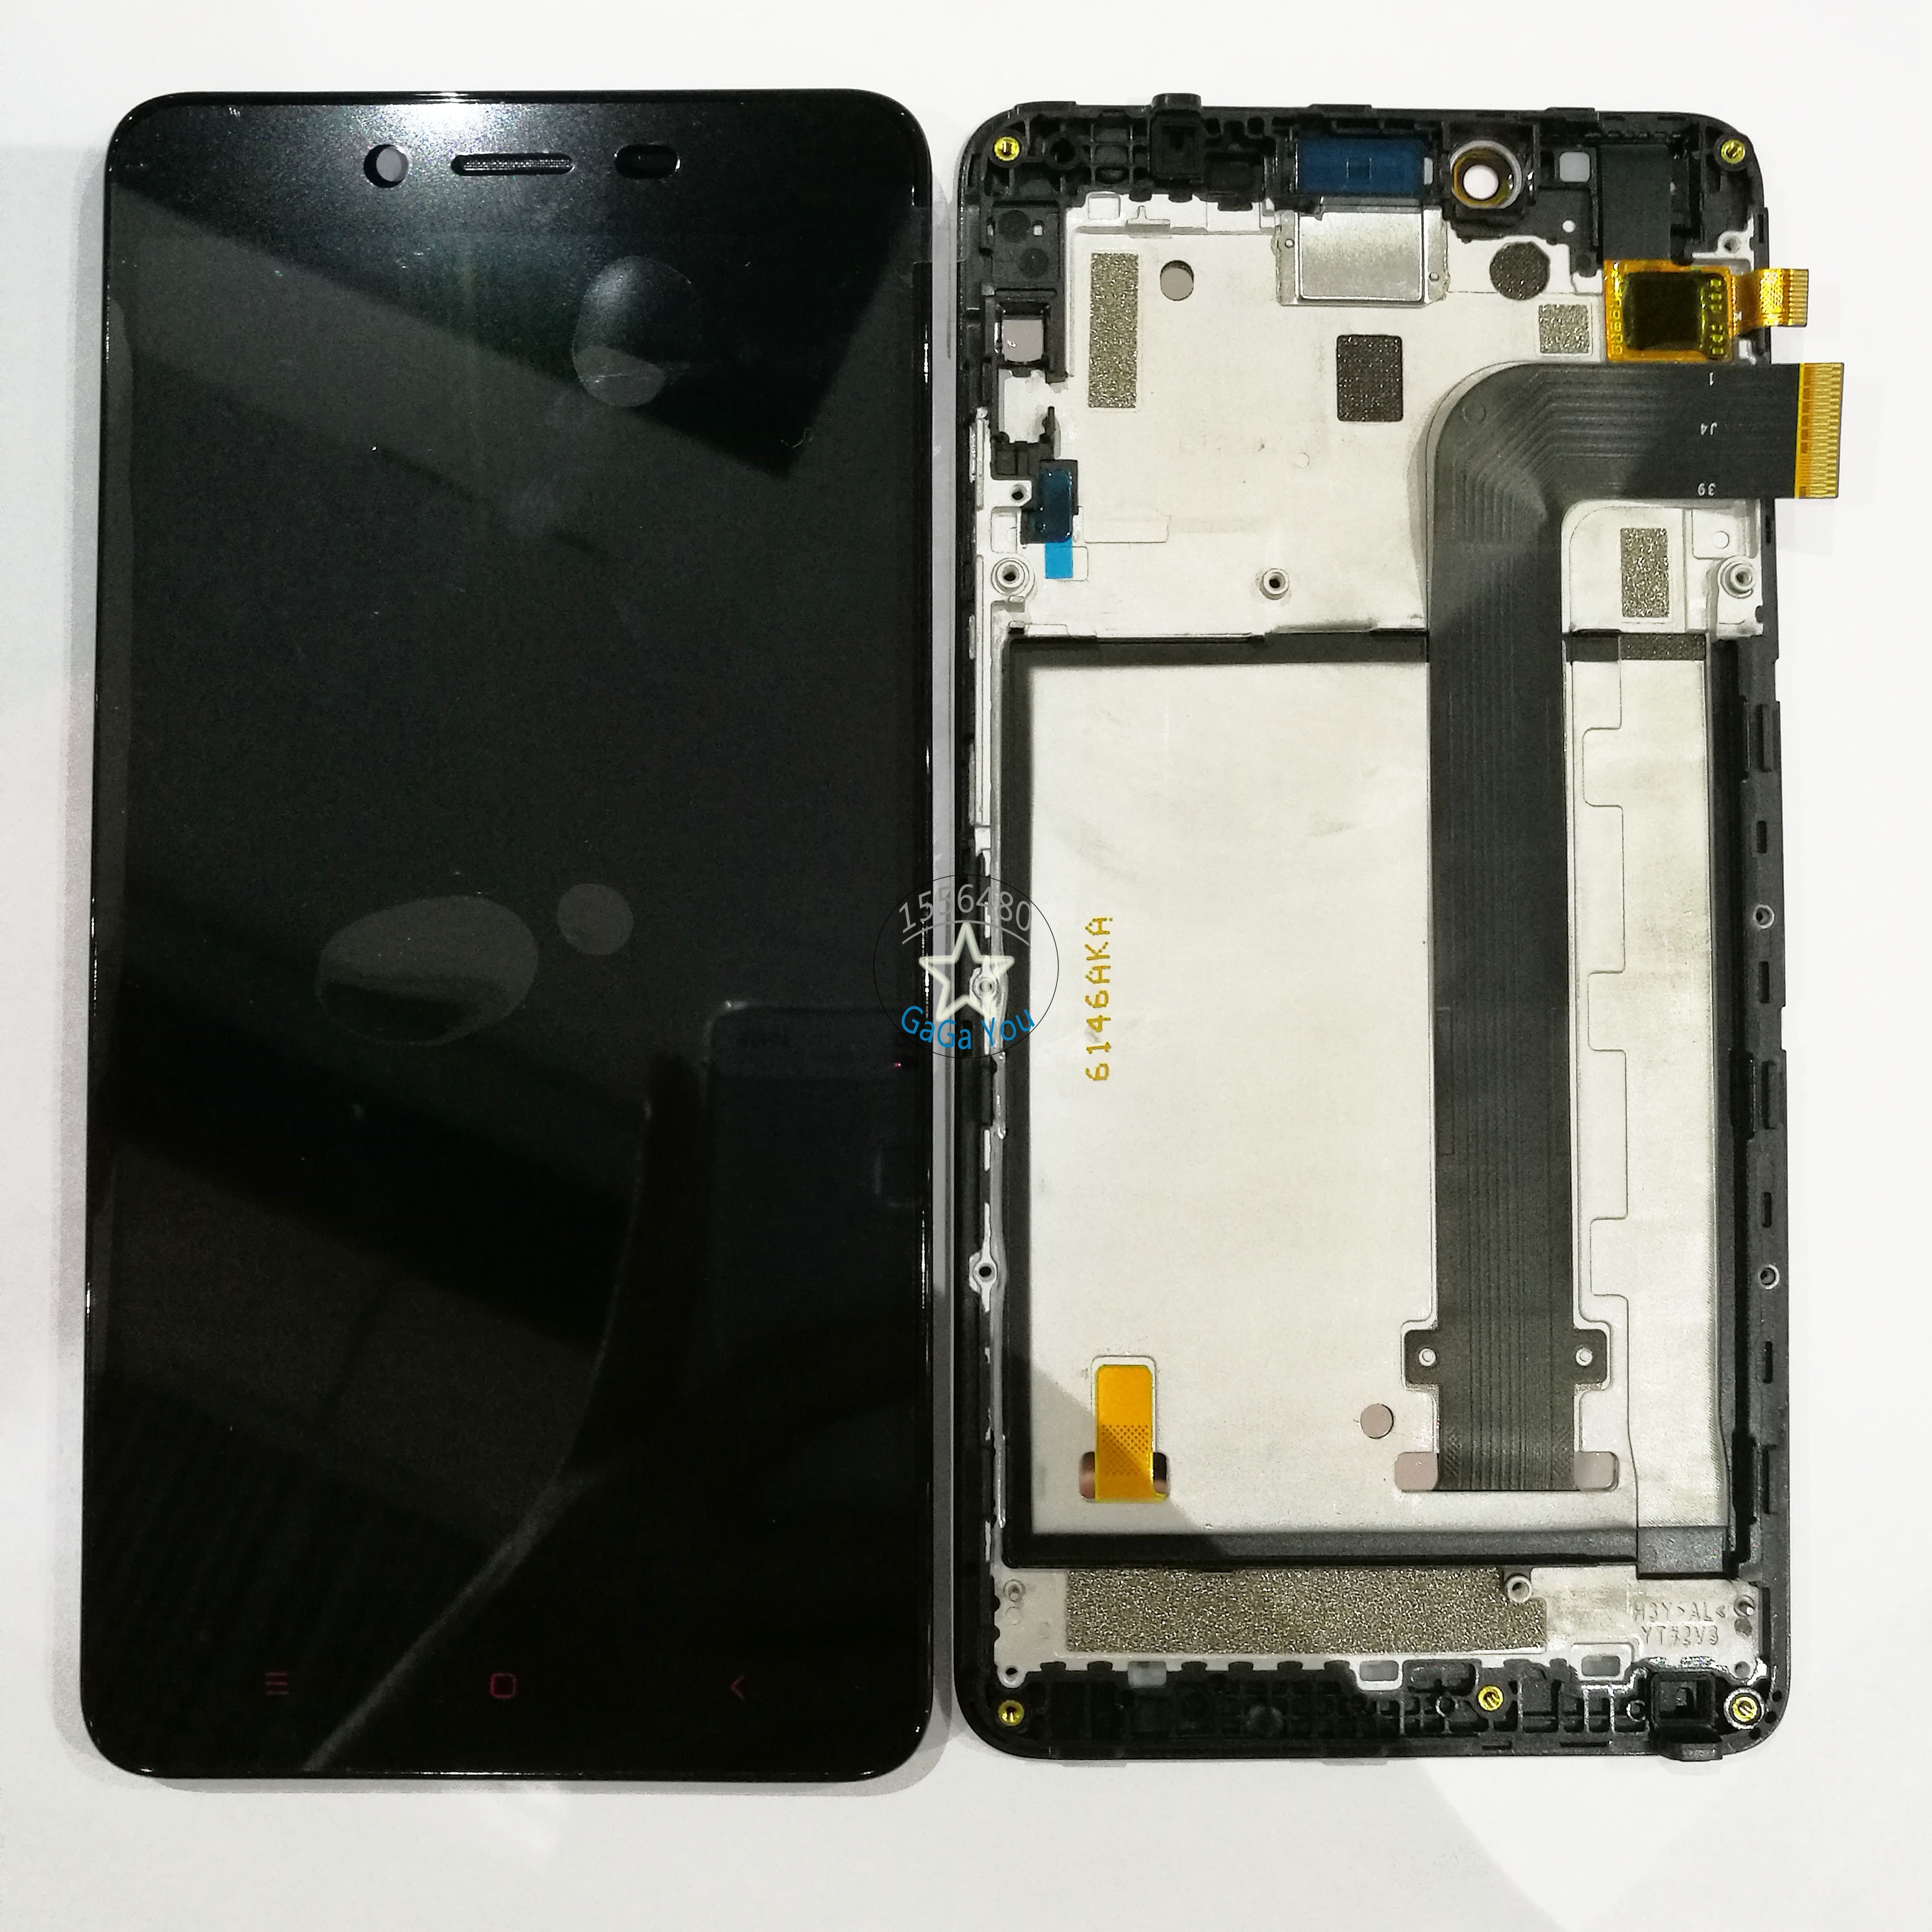 ФОТО Original New LCD Display +Touch Screen Panel Digitizer +Bezel Frame Assembly For Xiaomi Redmi Note 2 Replacement Parts